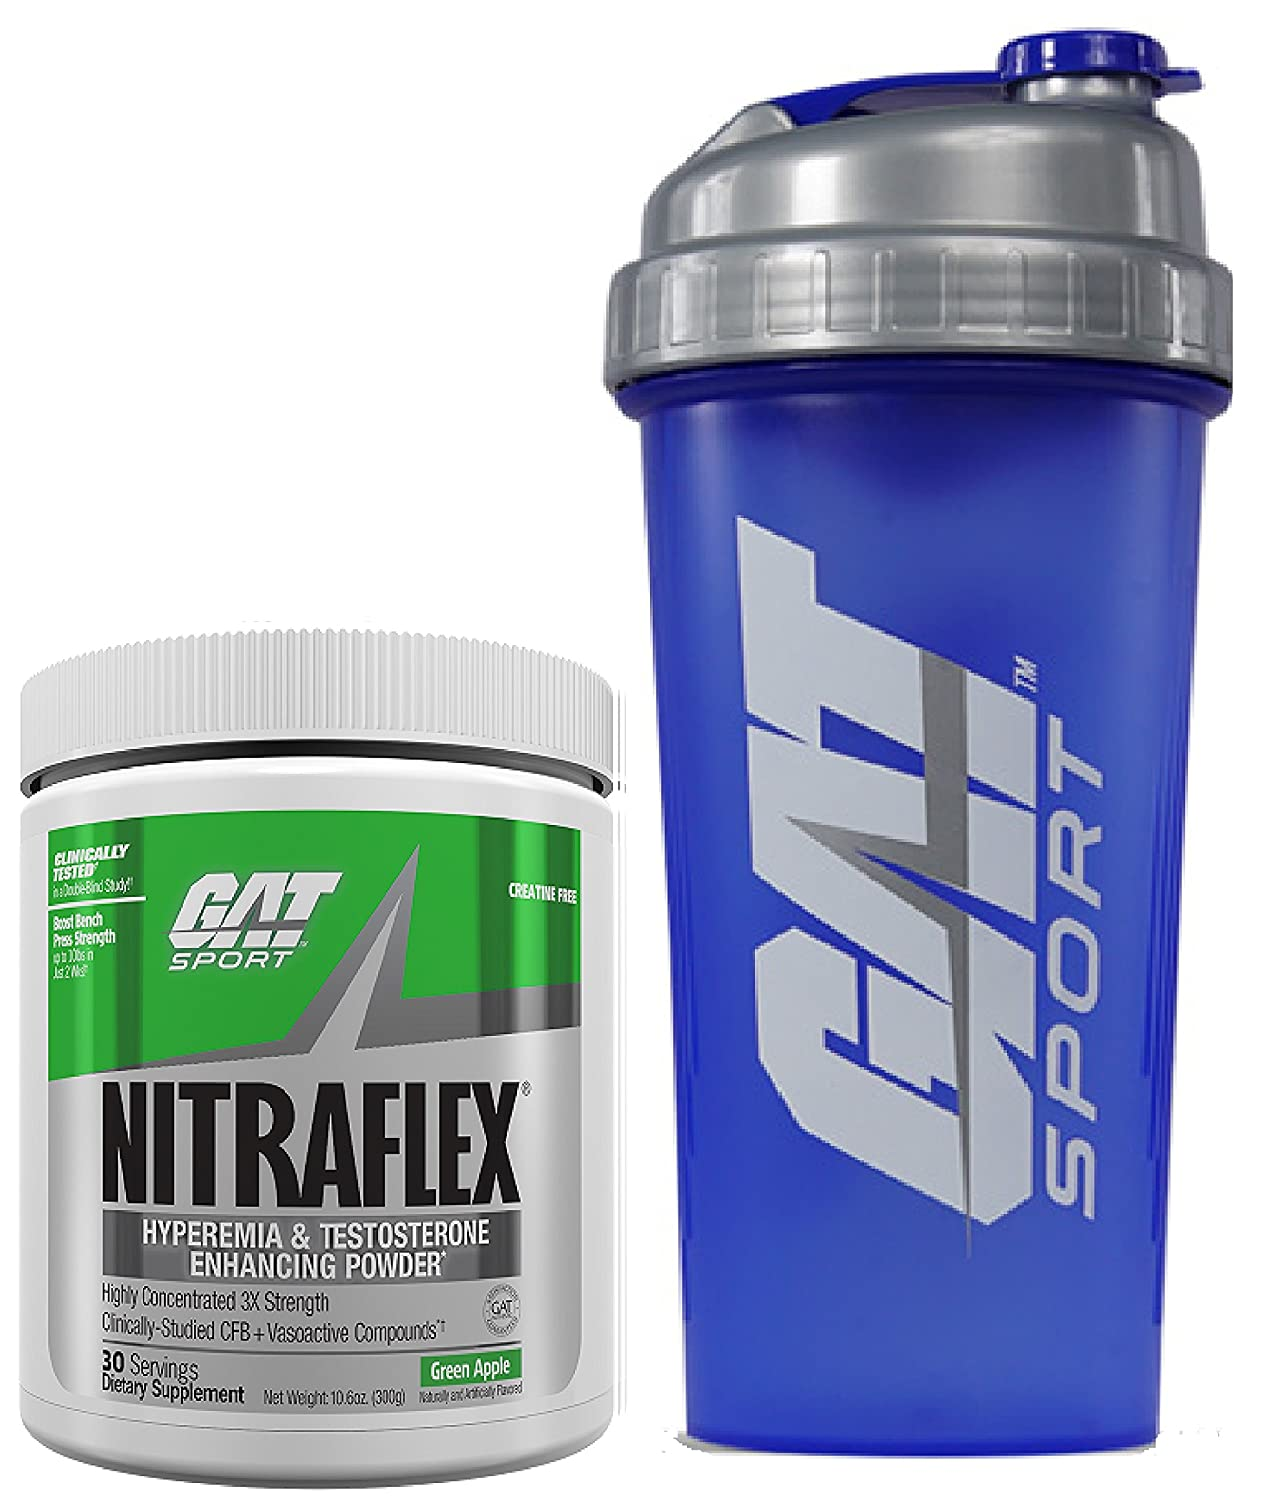 GAT Clinically Tested Nitraflex Testosterone Enhancing Pre Workout 300g 30 servings with BONUS GAT Shaker Bottle Green Apple